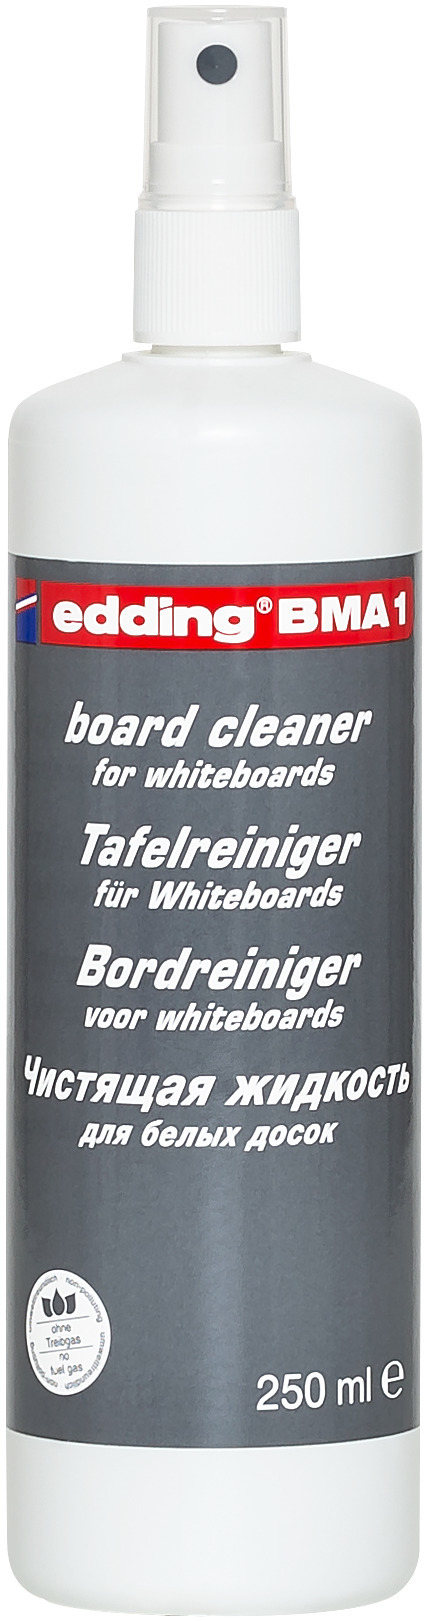 edding BMA 1 board cleaner